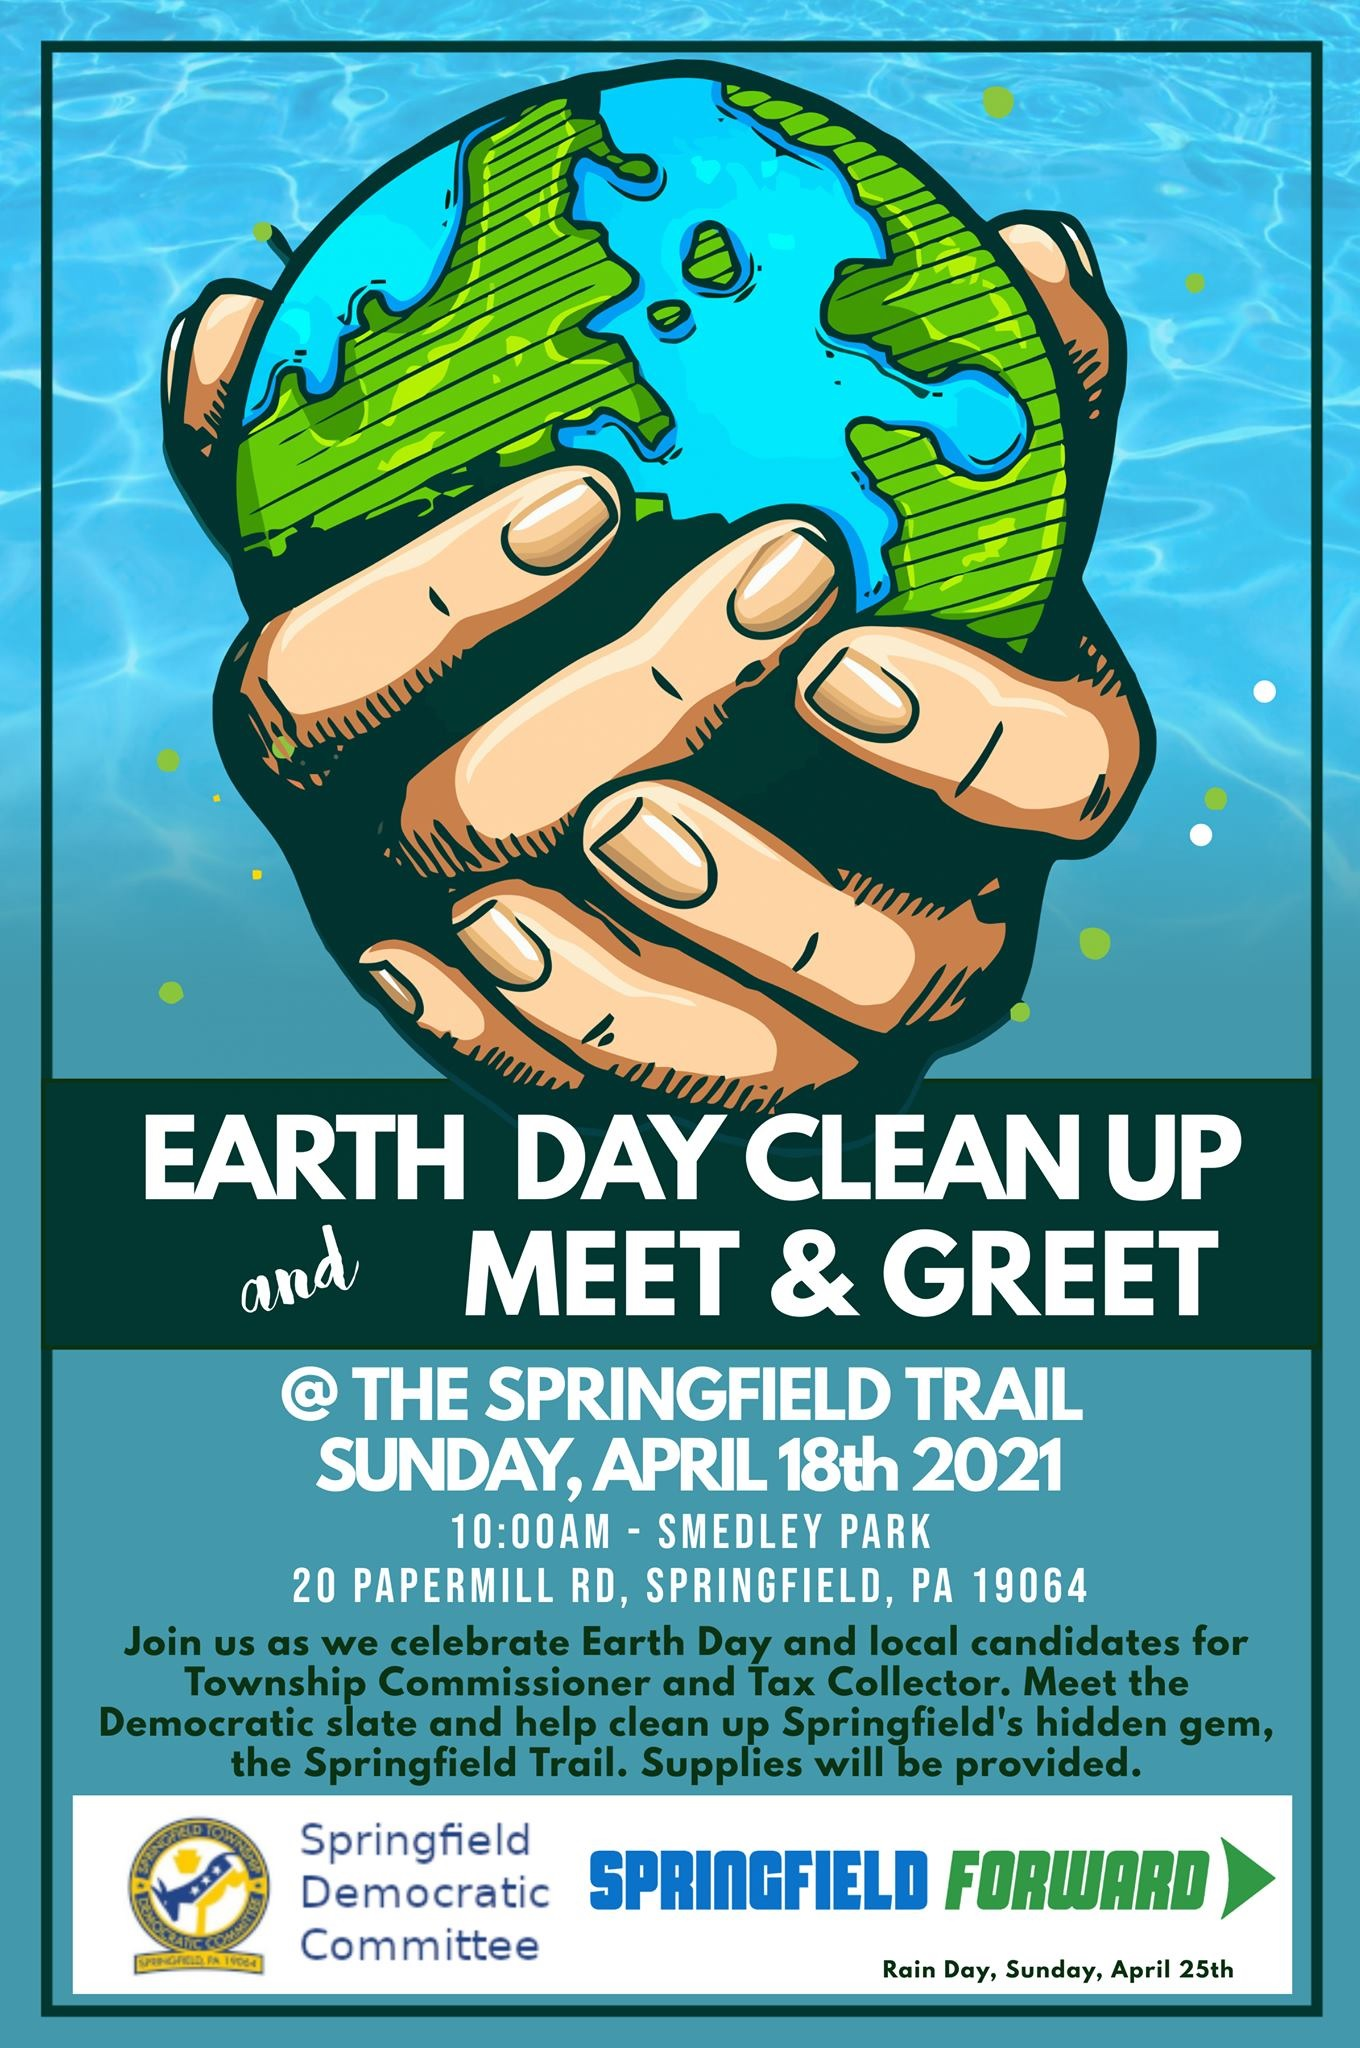 Earth Day Clean Up & Meet and Greet